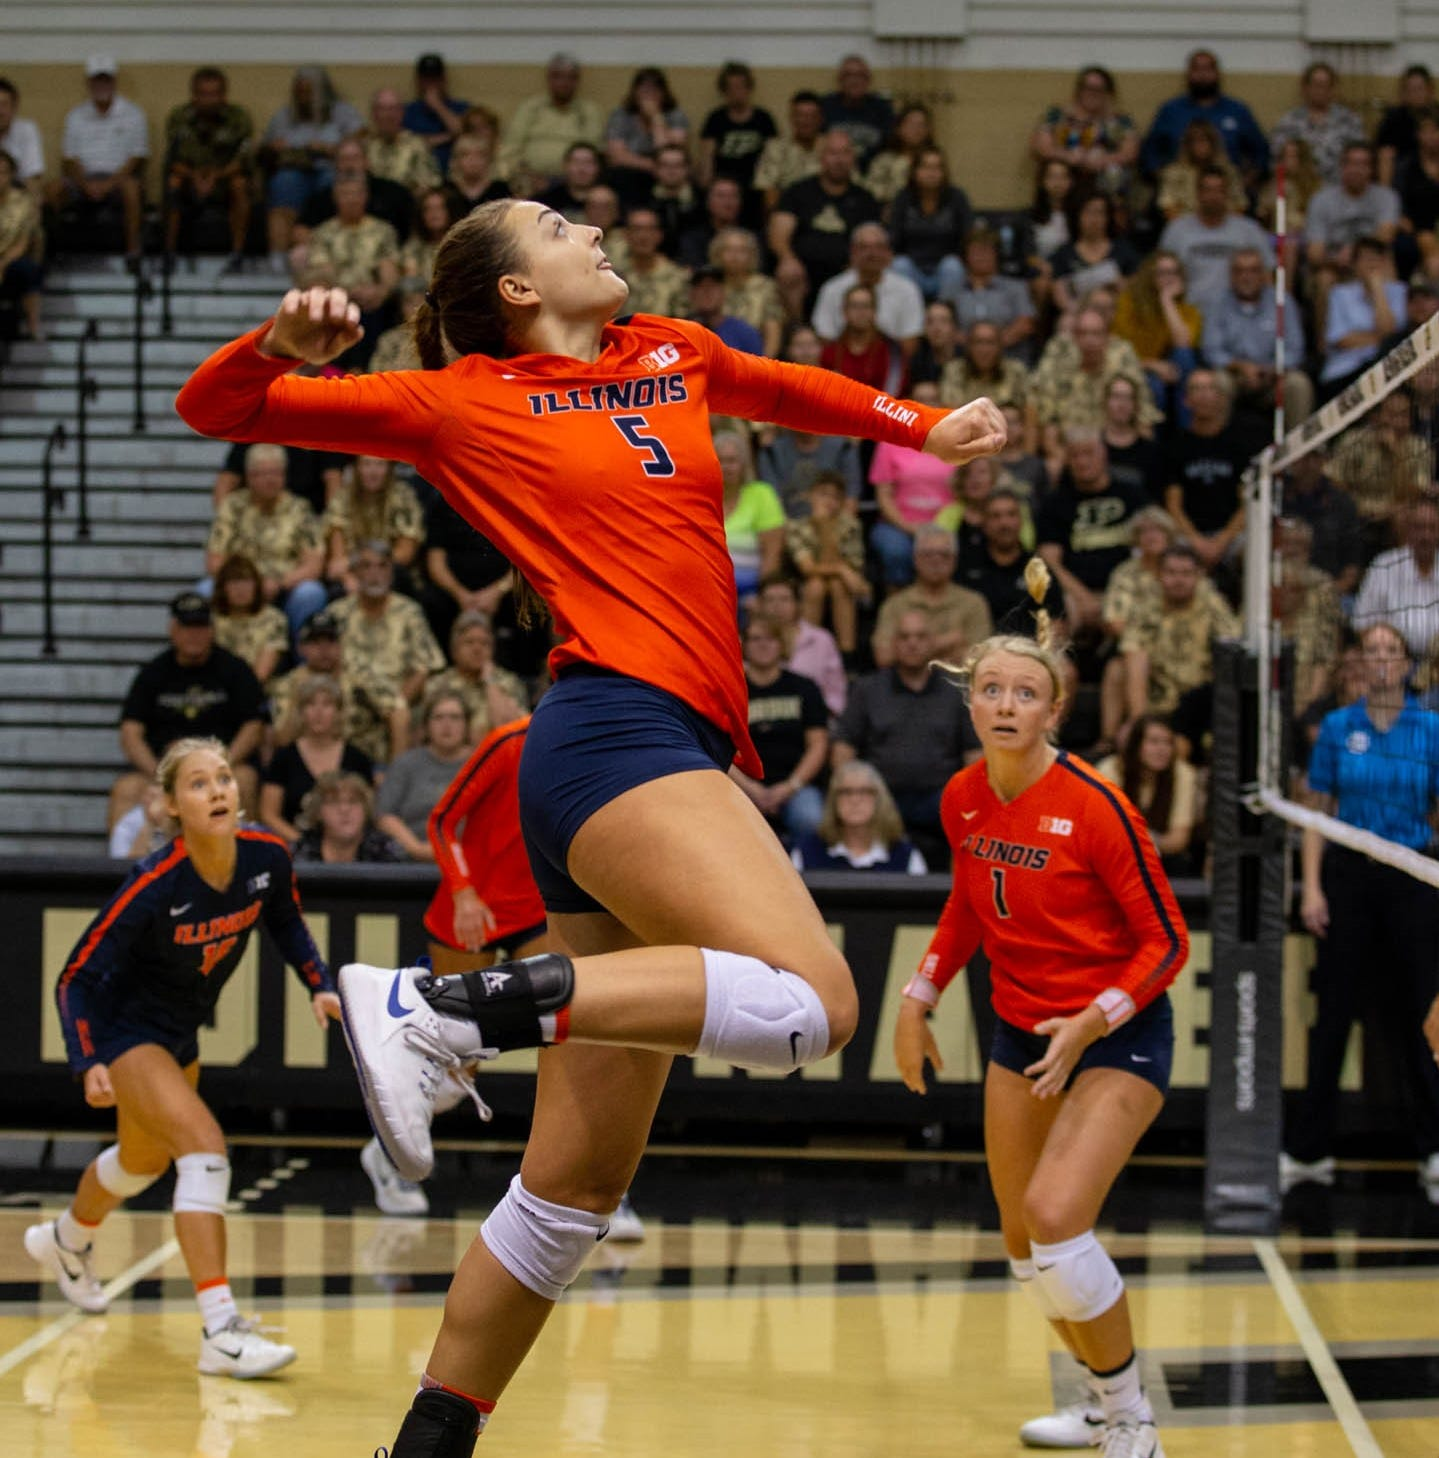 Marysville grad Bastianelli cherishes final volleyball season